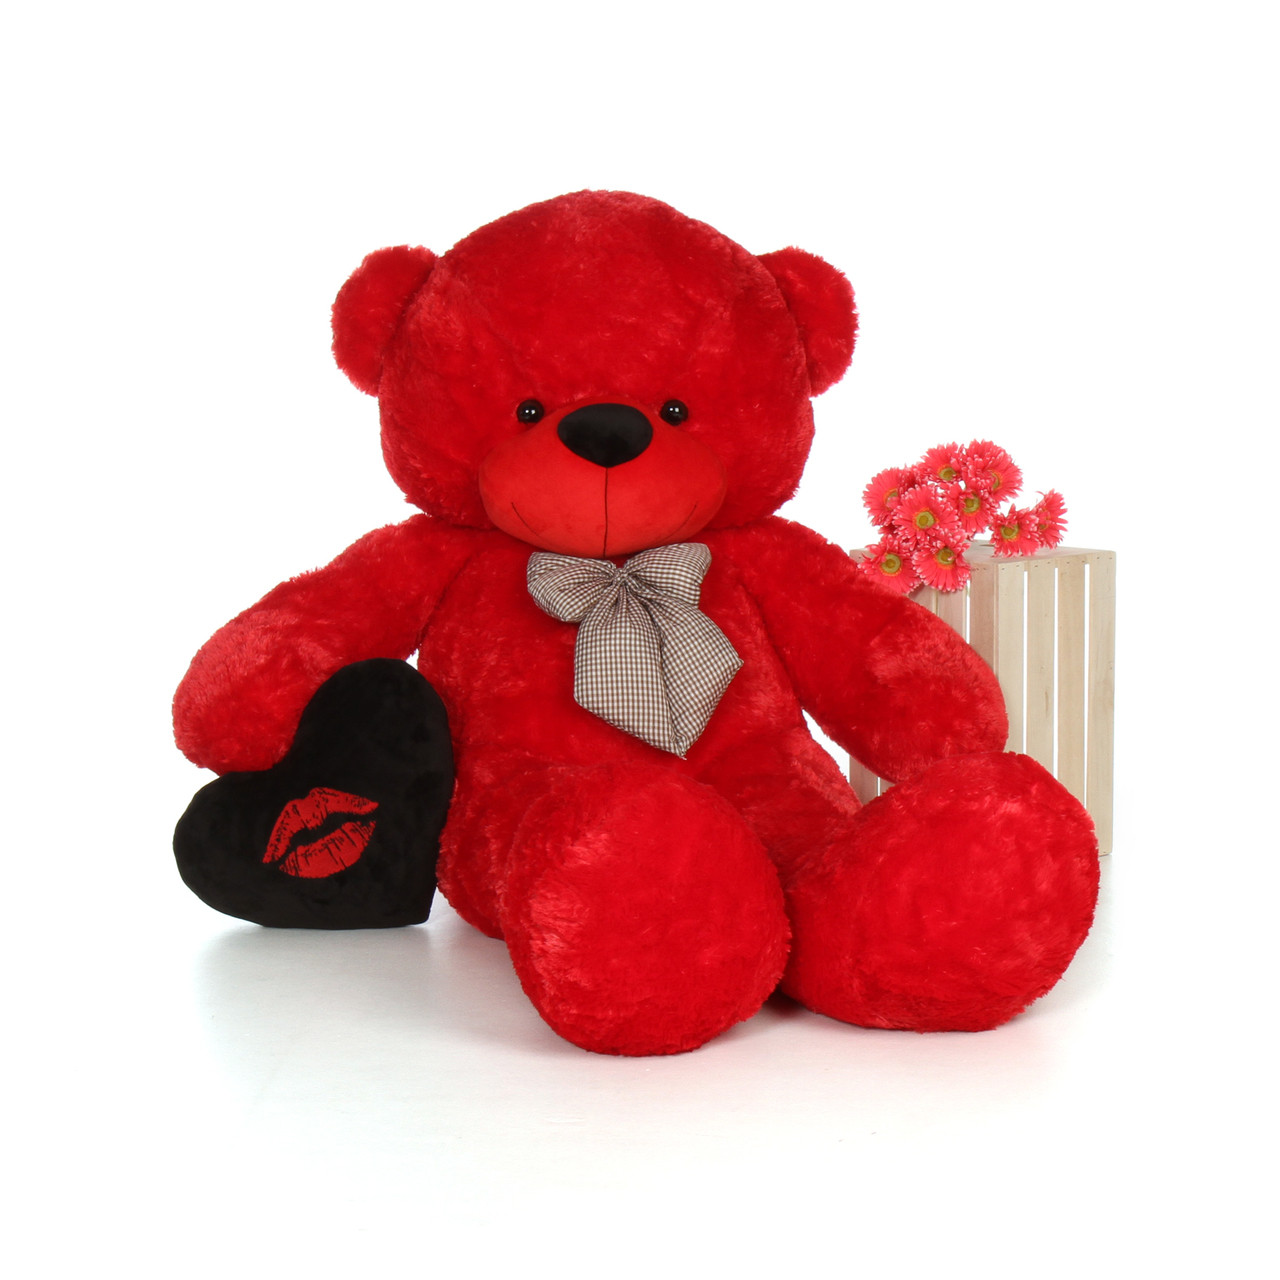 6 Foot Huge Life Size Red Valentine's Day Teddy Bear Bitsy